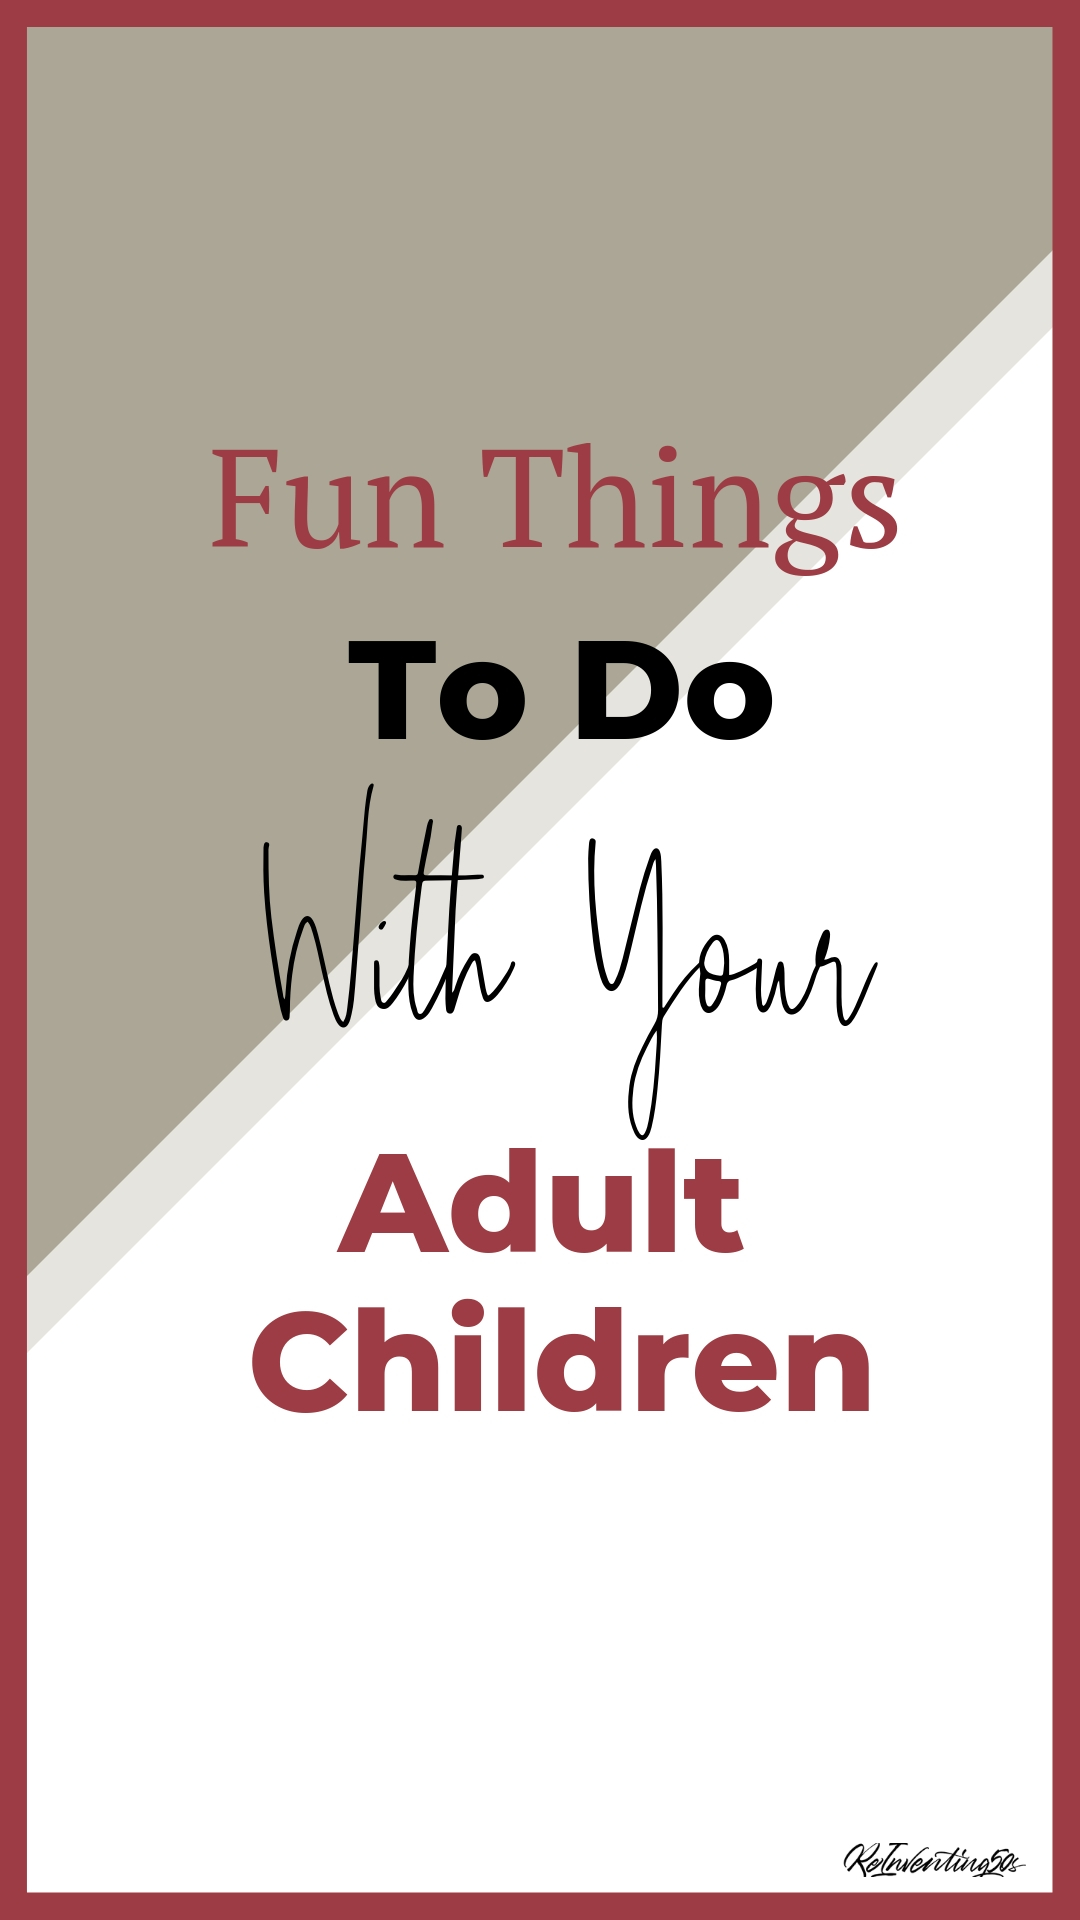 When your children grow up it is hard to keep connected.  These 5 activities will help create meaningful family time with your adult children